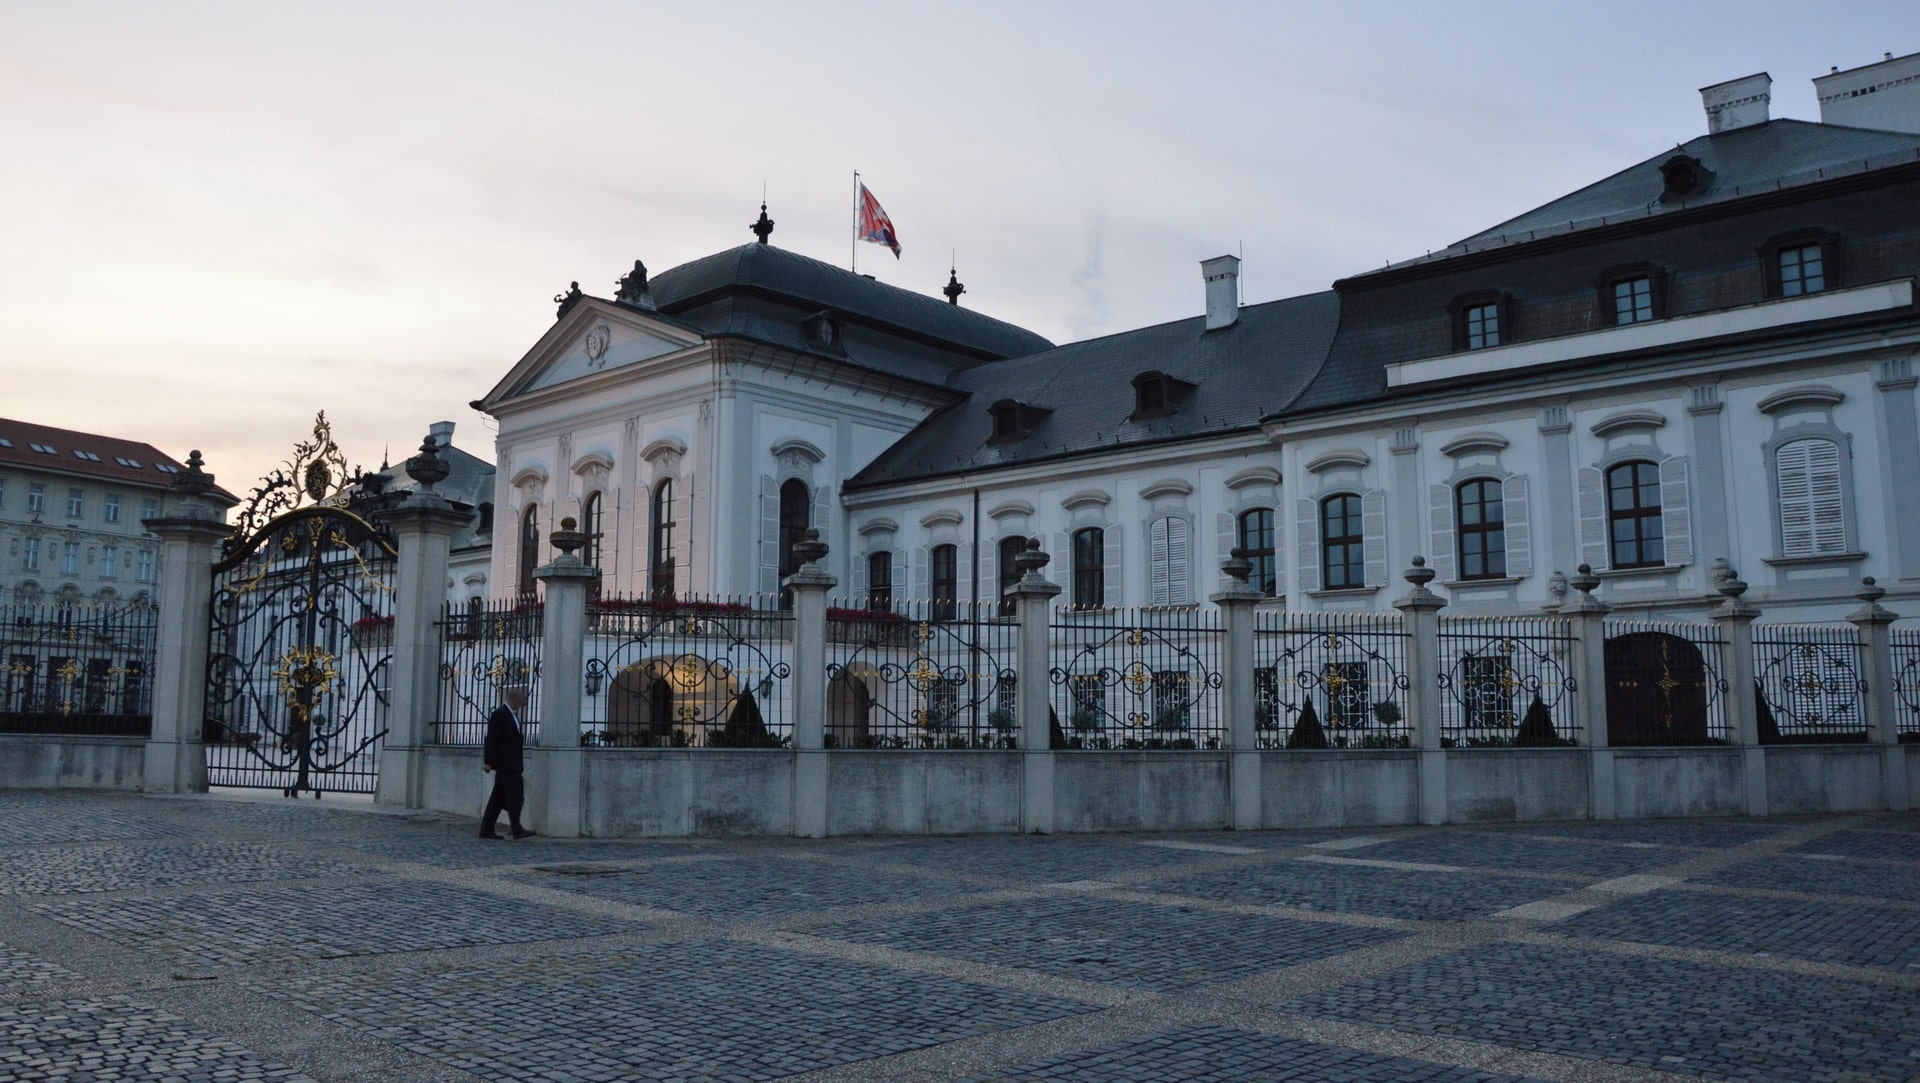 Grassalkovich Palace is the residence of the President of the Slovak Republic